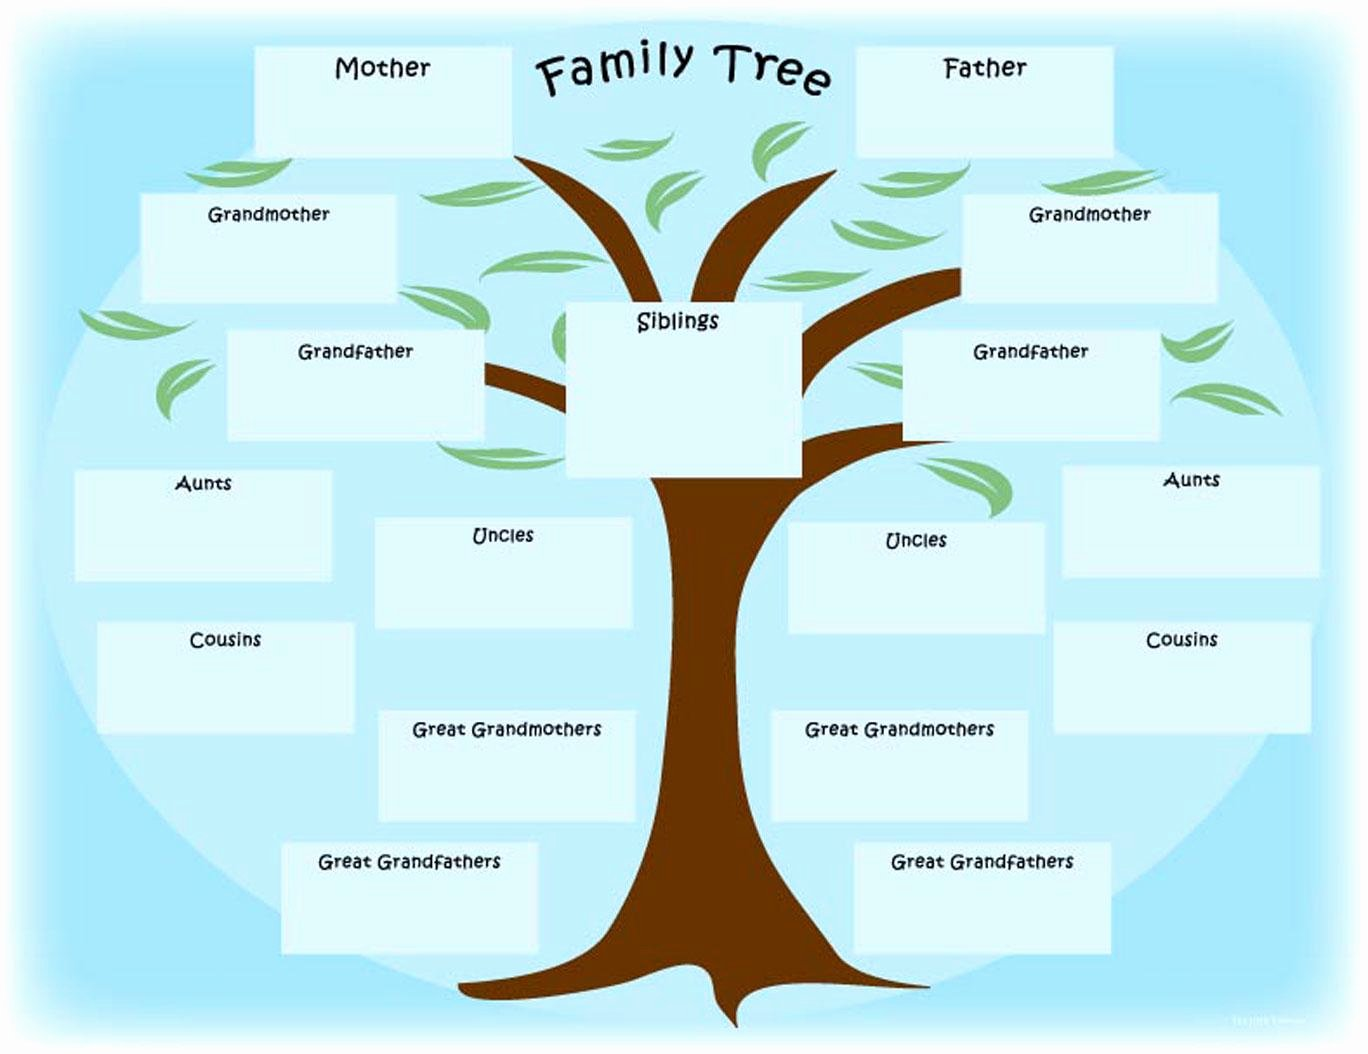 Family Tree Templates Excel Beautiful 15 Free Family Tree Template Chart & Diagram In Pdf